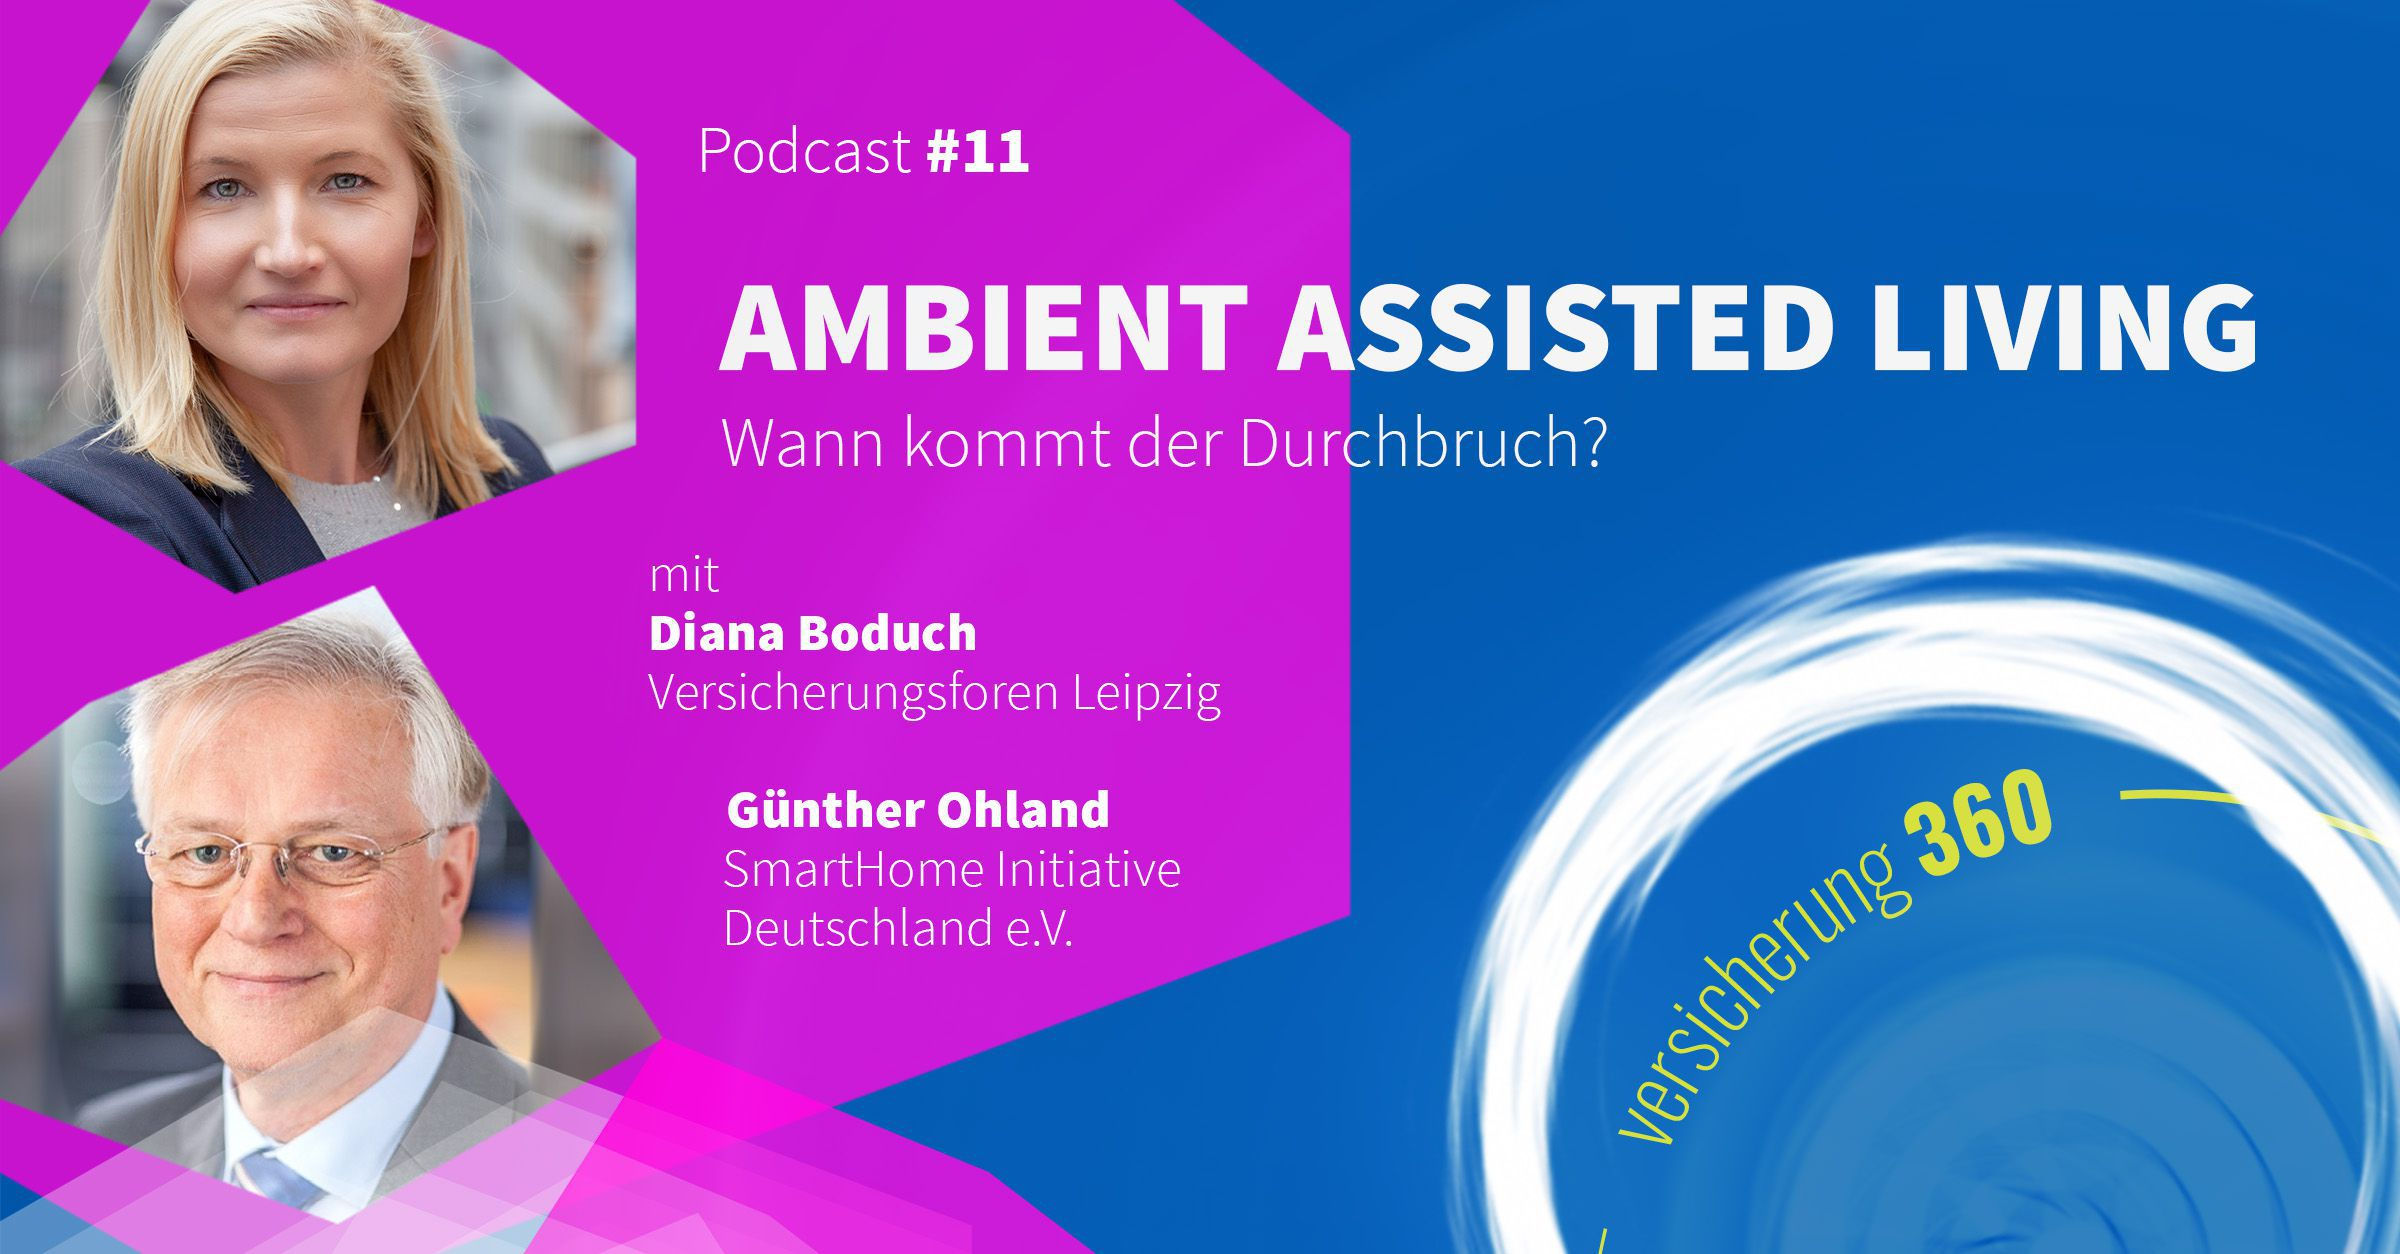 Podcast #11: Ambient Assisted Living – wann kommt der Durchbruch?